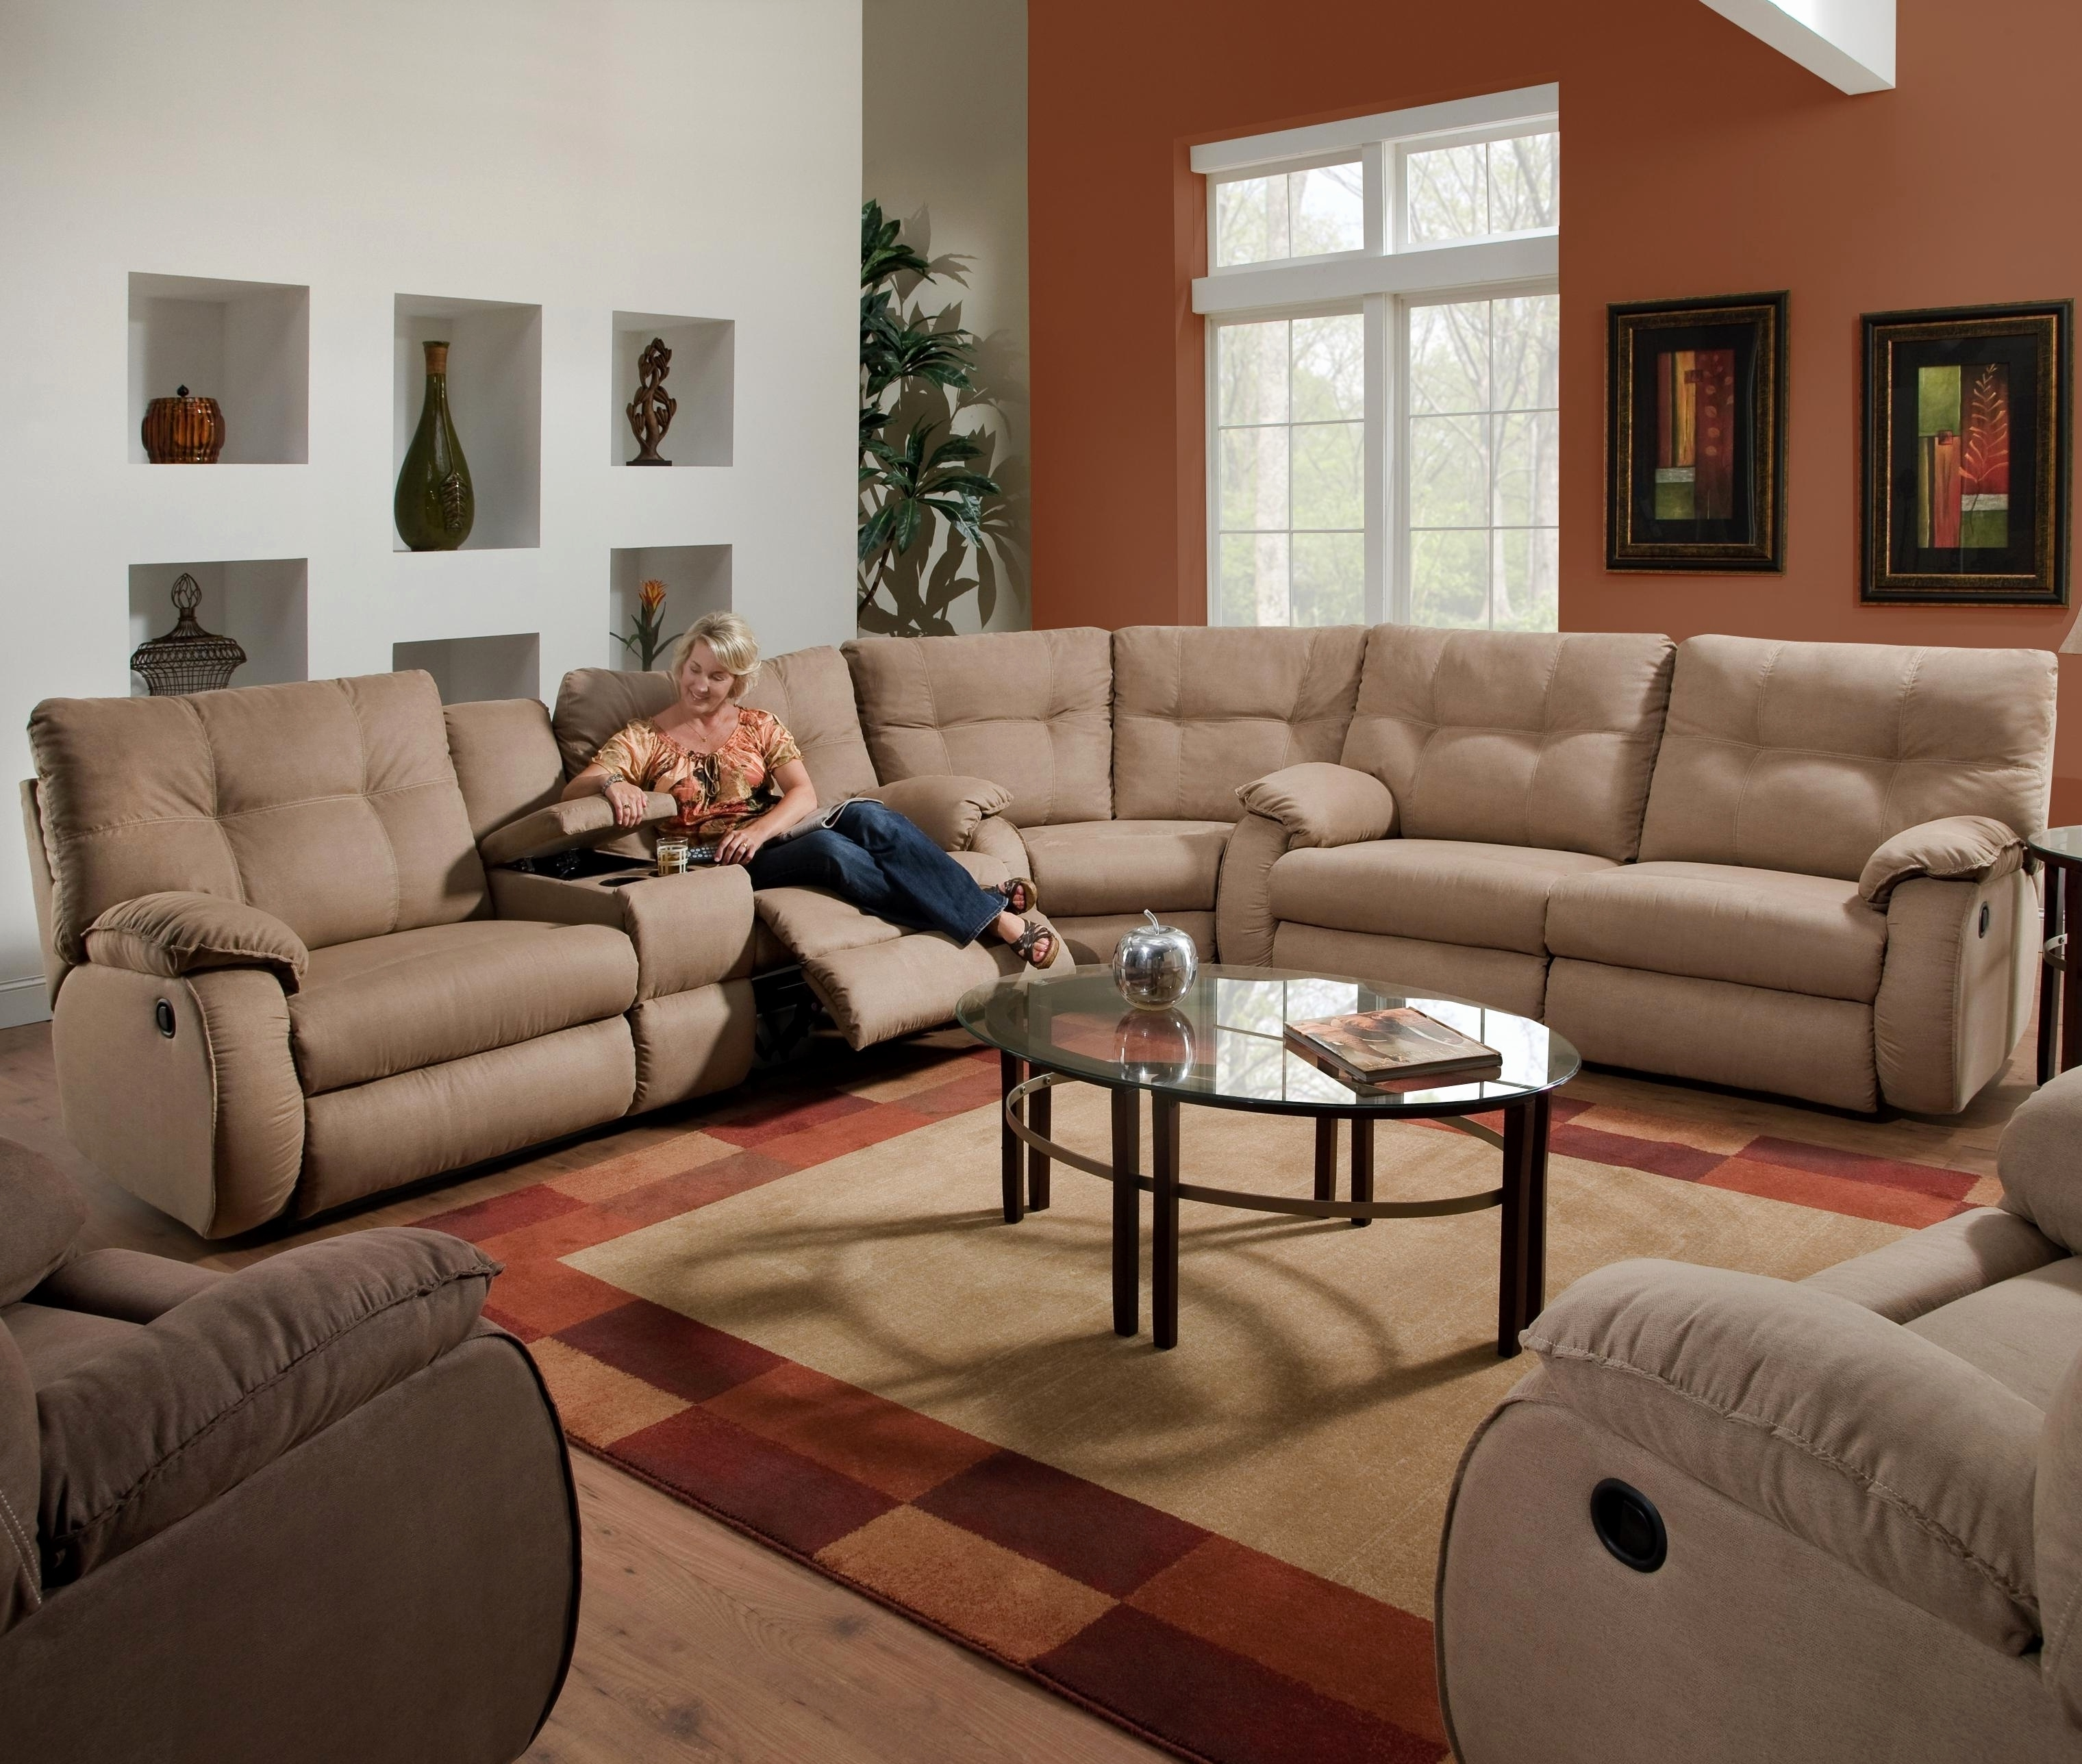 Sectional Sofas For Small Spaces With Recliners In Most Recent Inspirational Recliners For Small Spaces 2018 – Couches And Sofas (View 18 of 20)